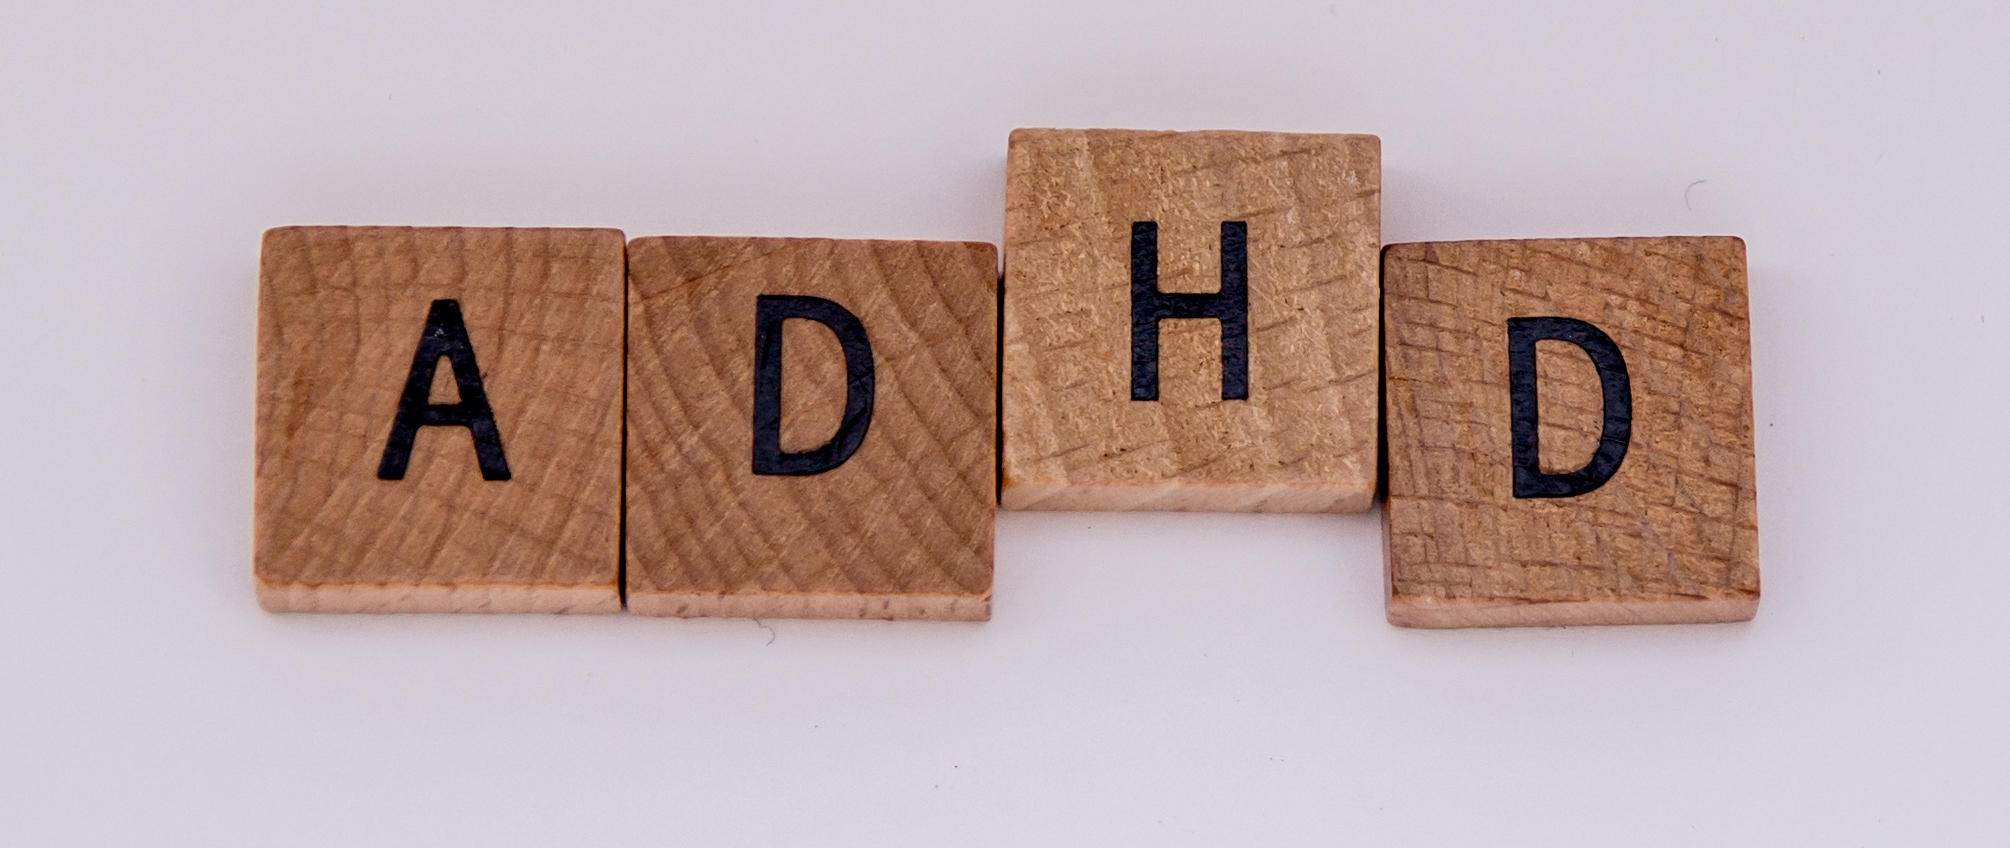 Case studies done on adhd